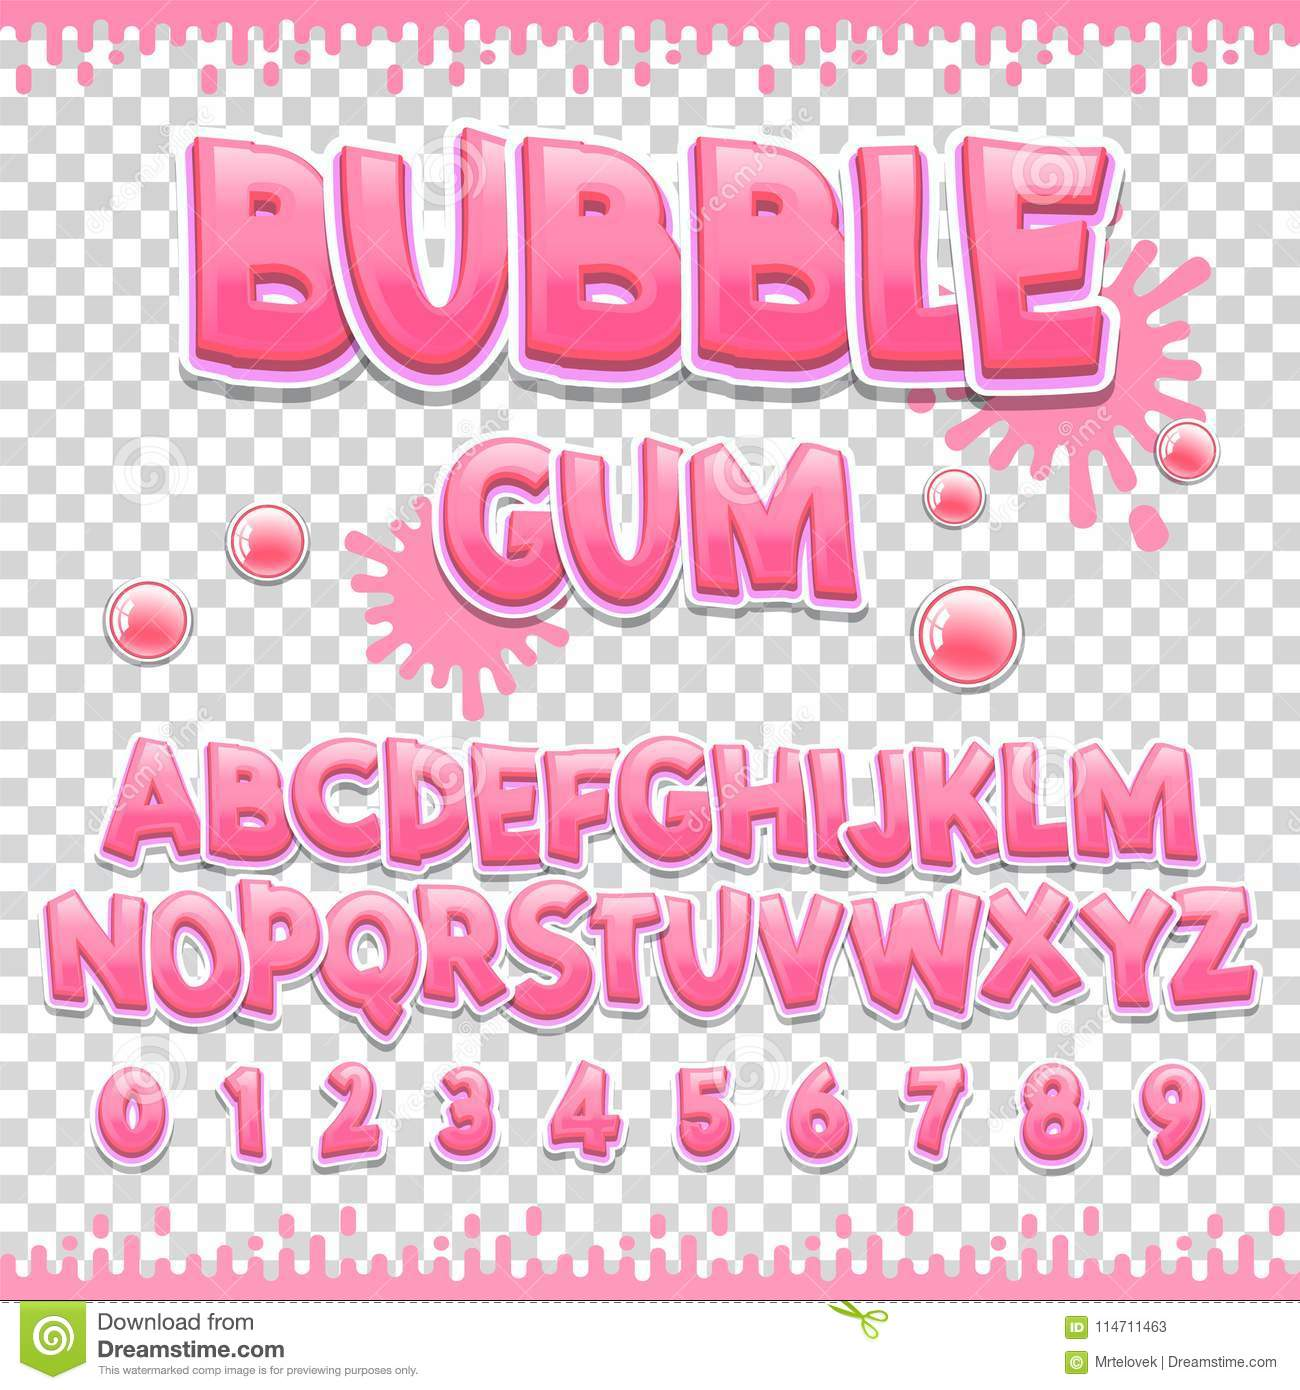 Bubble Gum Latin Font Design Sweet Abc Letters And Numbers Cute